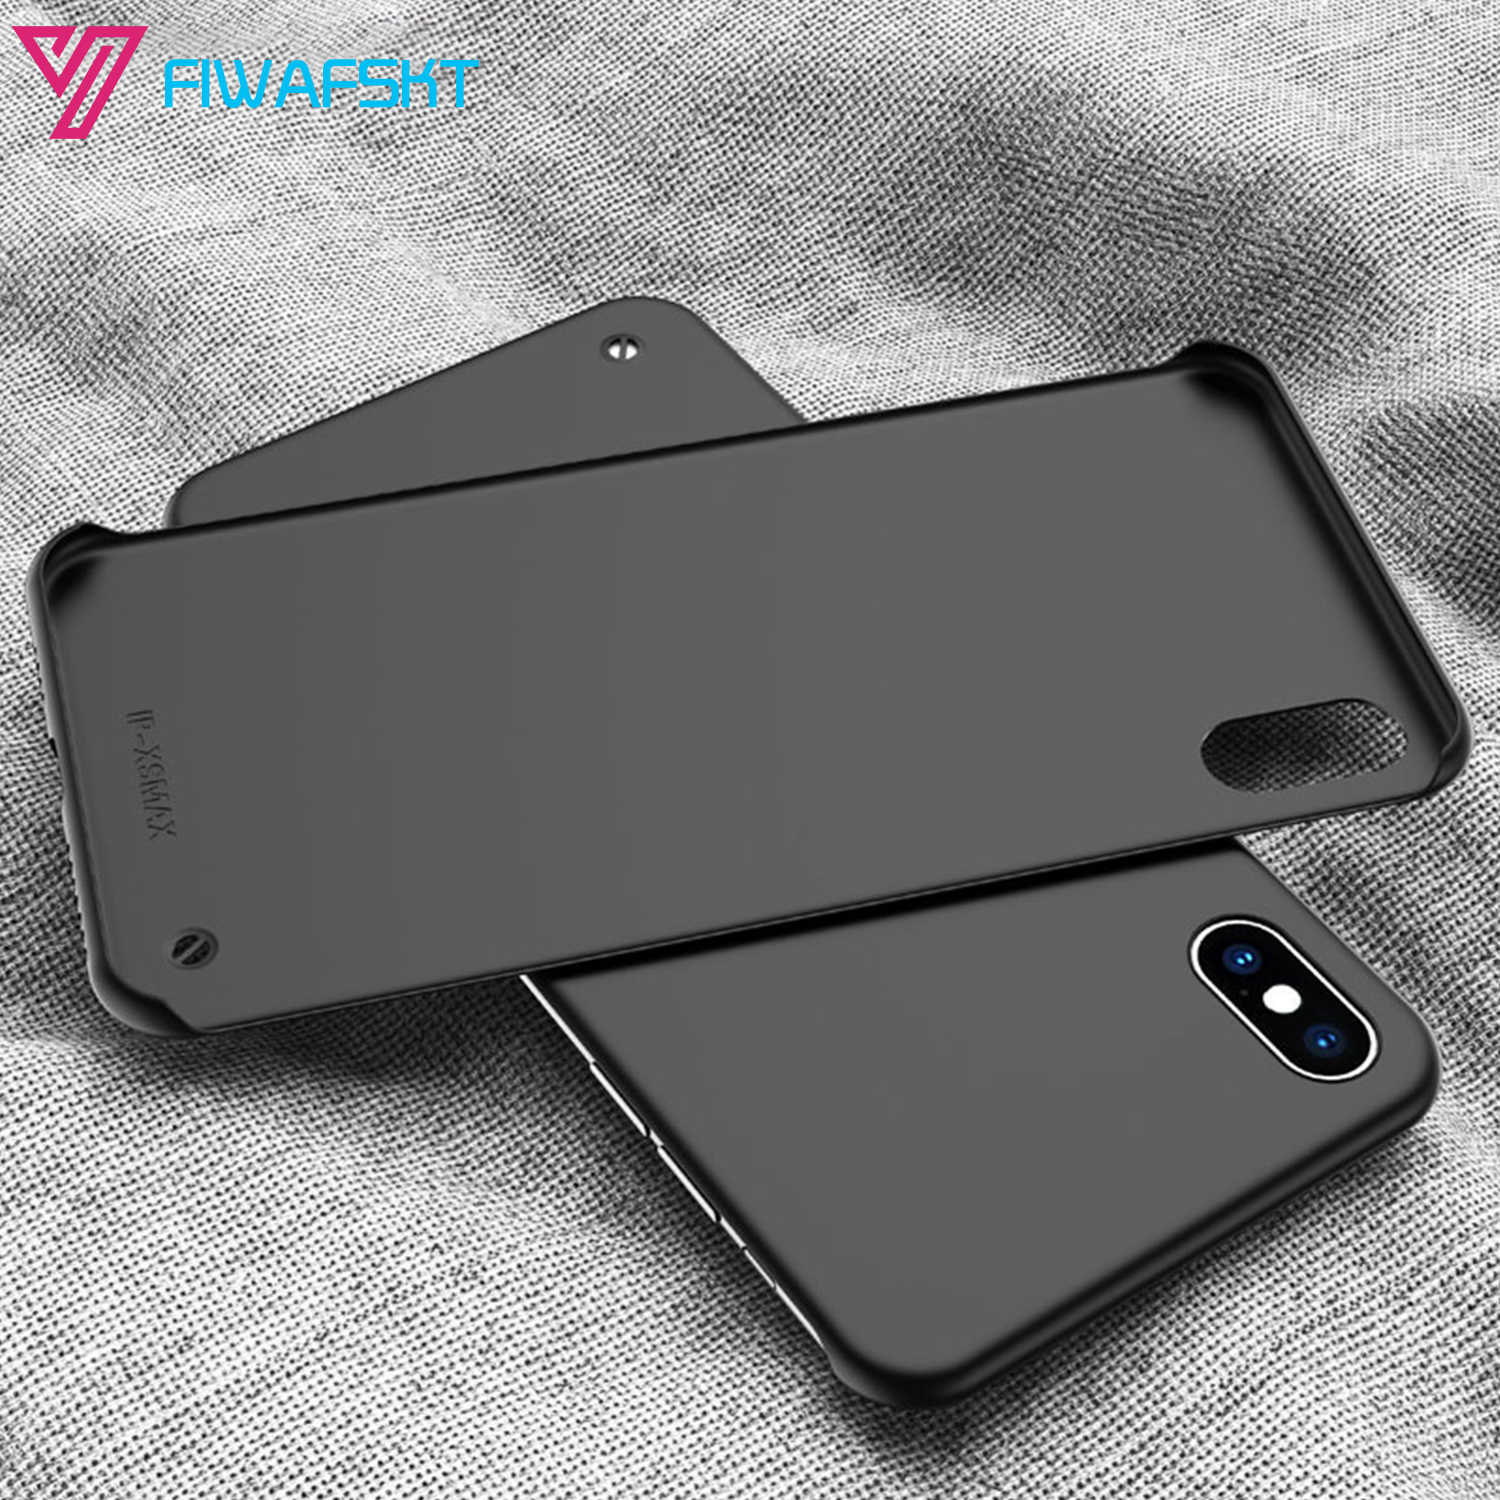 FramelessสำหรับiPhone XS Max XR X 7 8 Plus 6 6S Plus 11 Pro 2019 5.8 6.1 6.5 นิ้วใหม่CandyกรณีHard PC Matte Back Cover